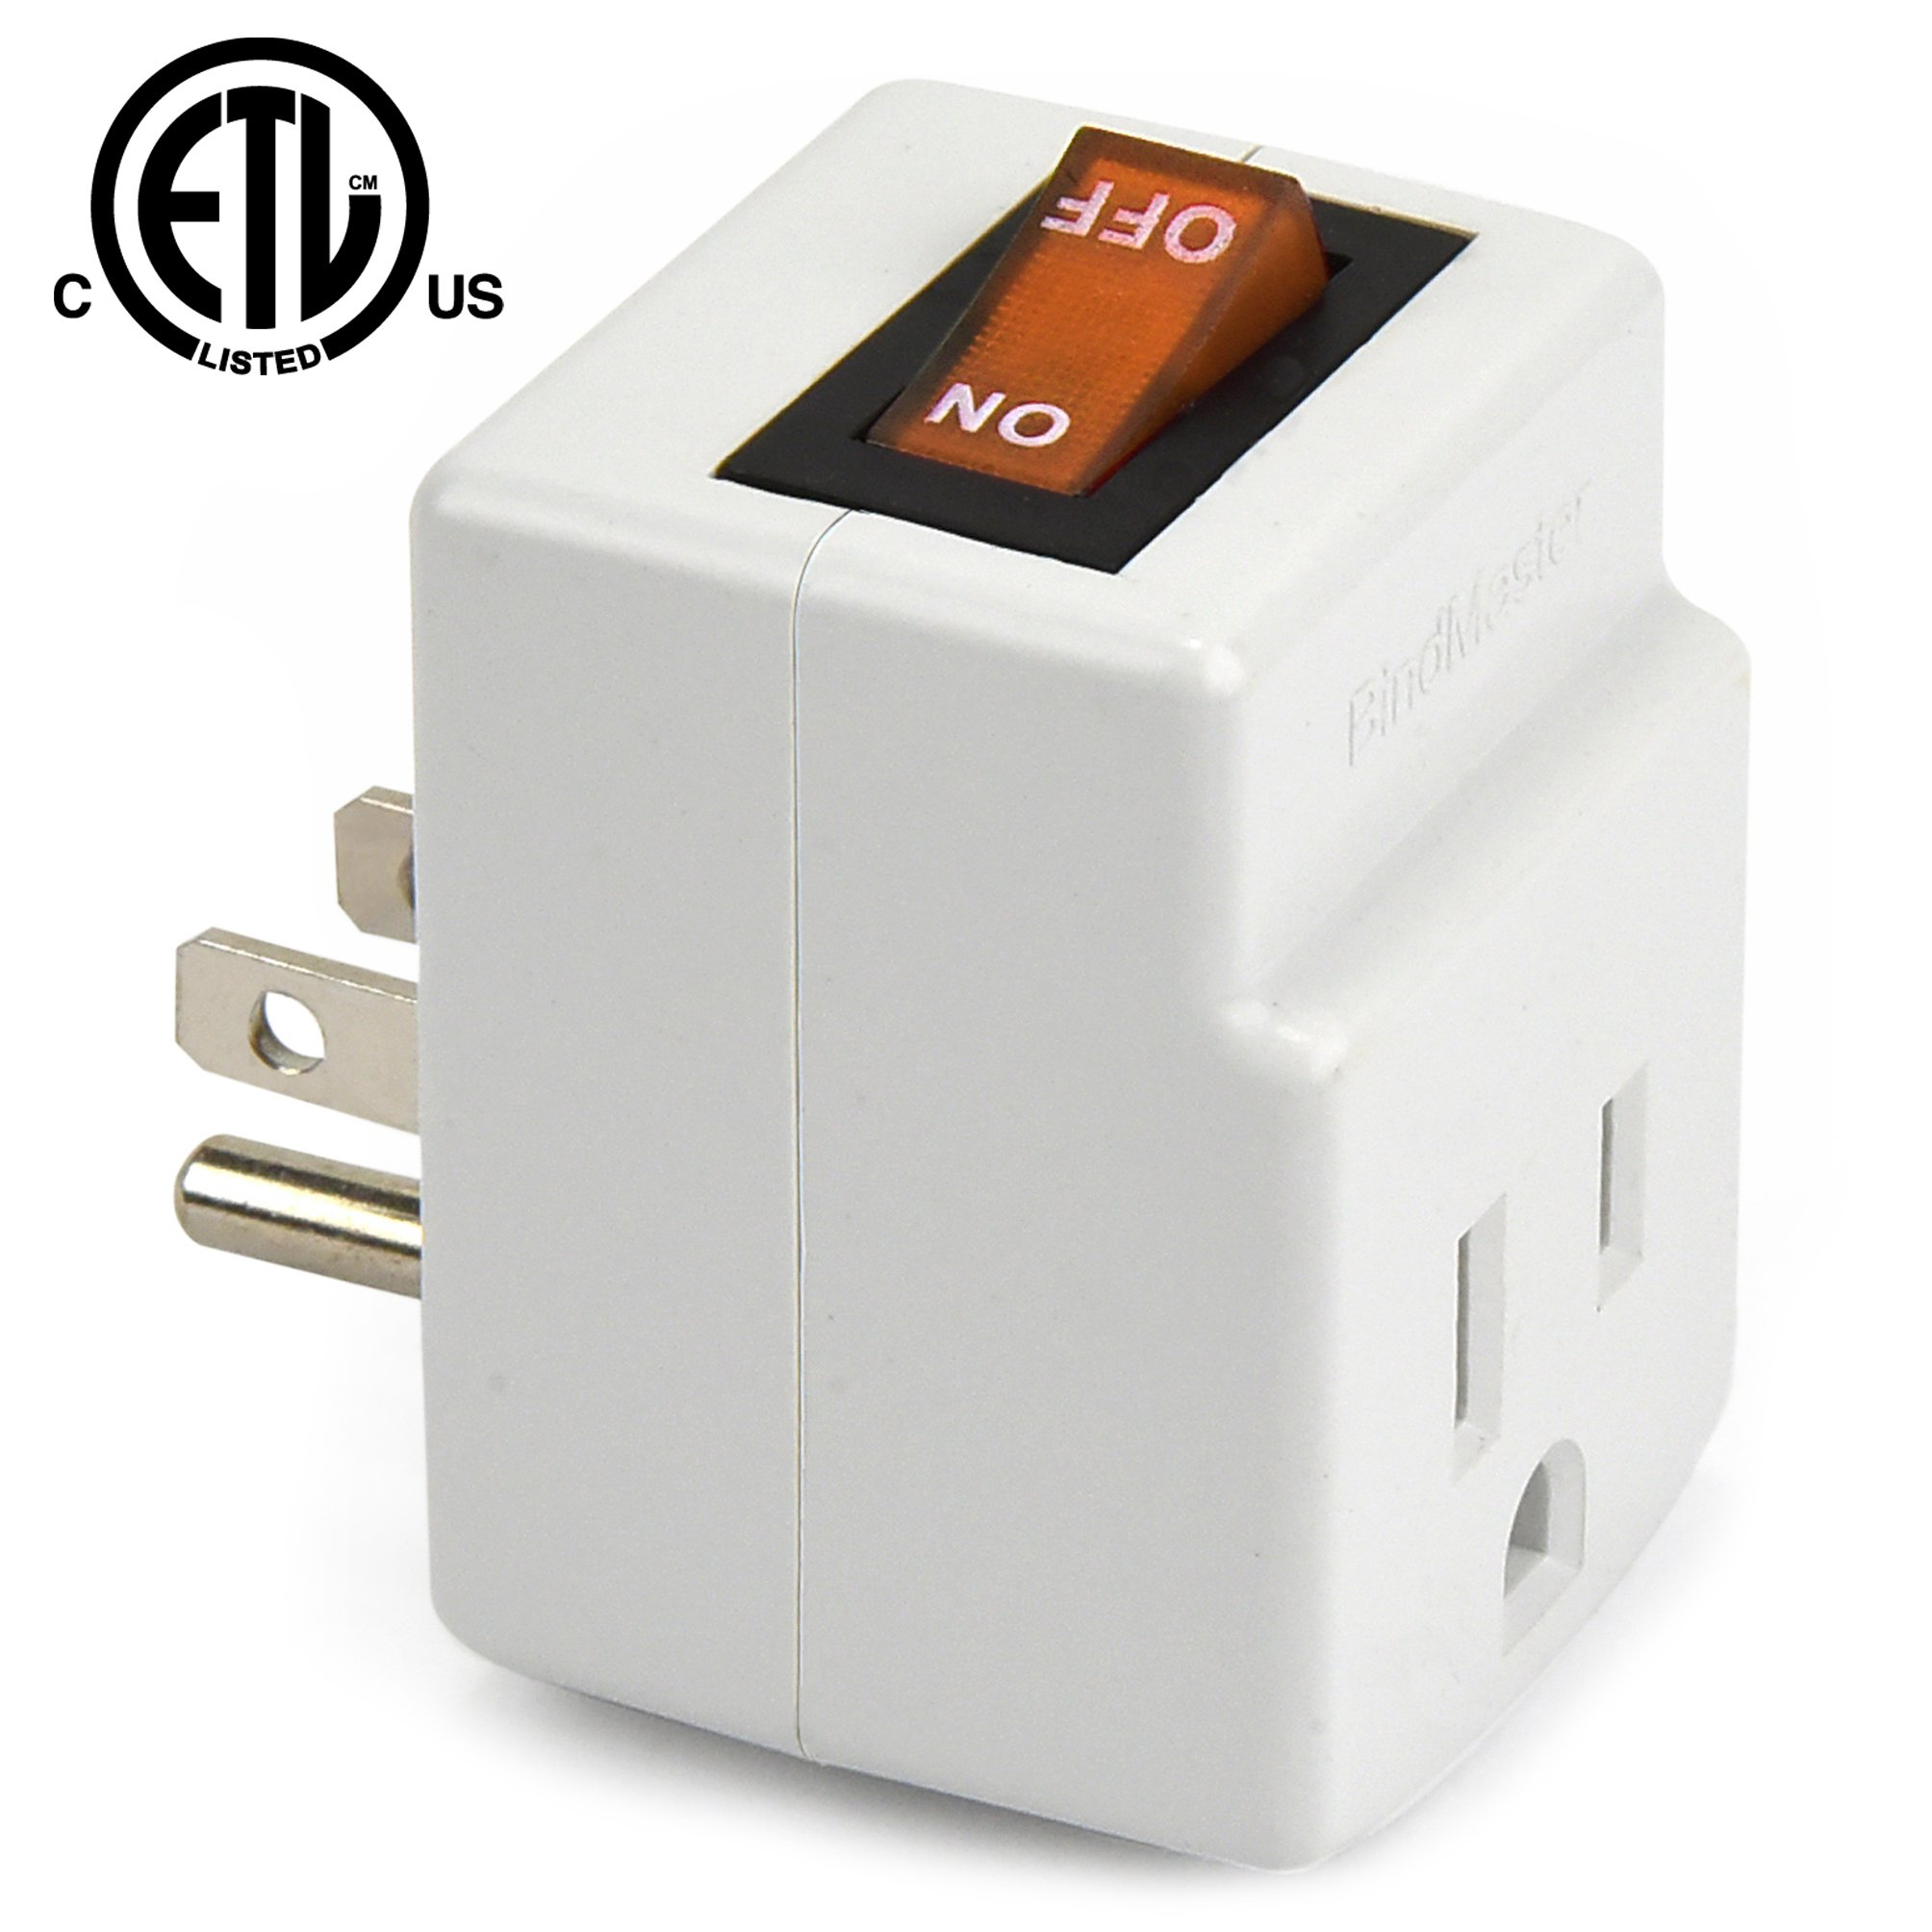 NEW! 3 Prong Grounded Single Port Power Adapter for outlet with Orange indicator On/Off Switch to be energy saving (3 Pack)